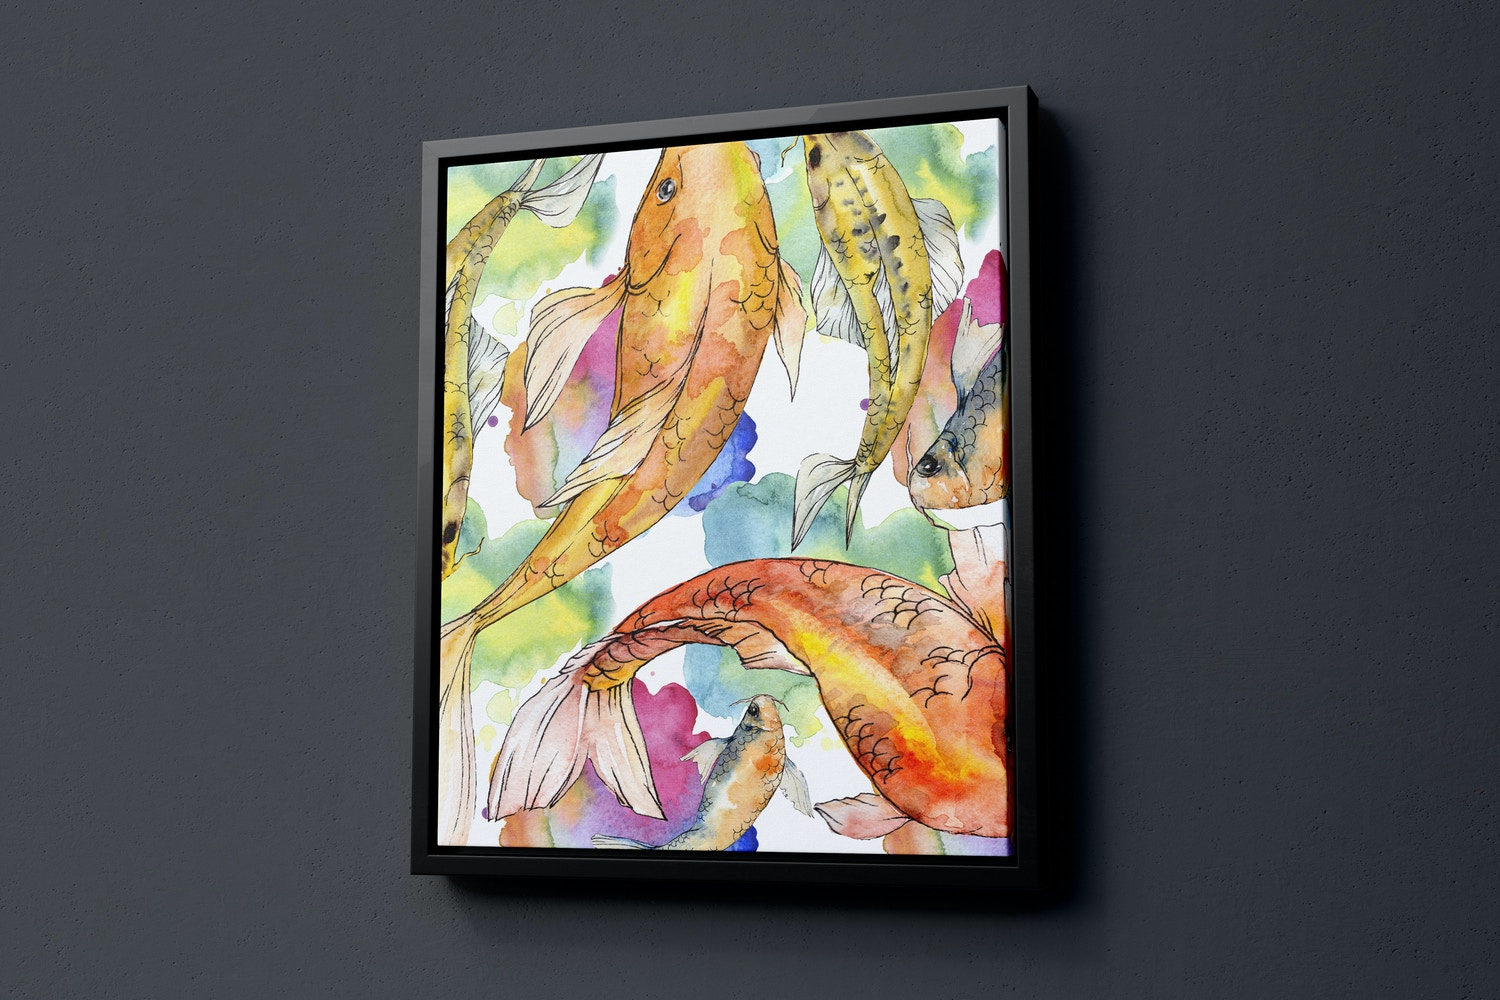 5:6 Portrait Canvas Mockup in Floater Frame, Right View